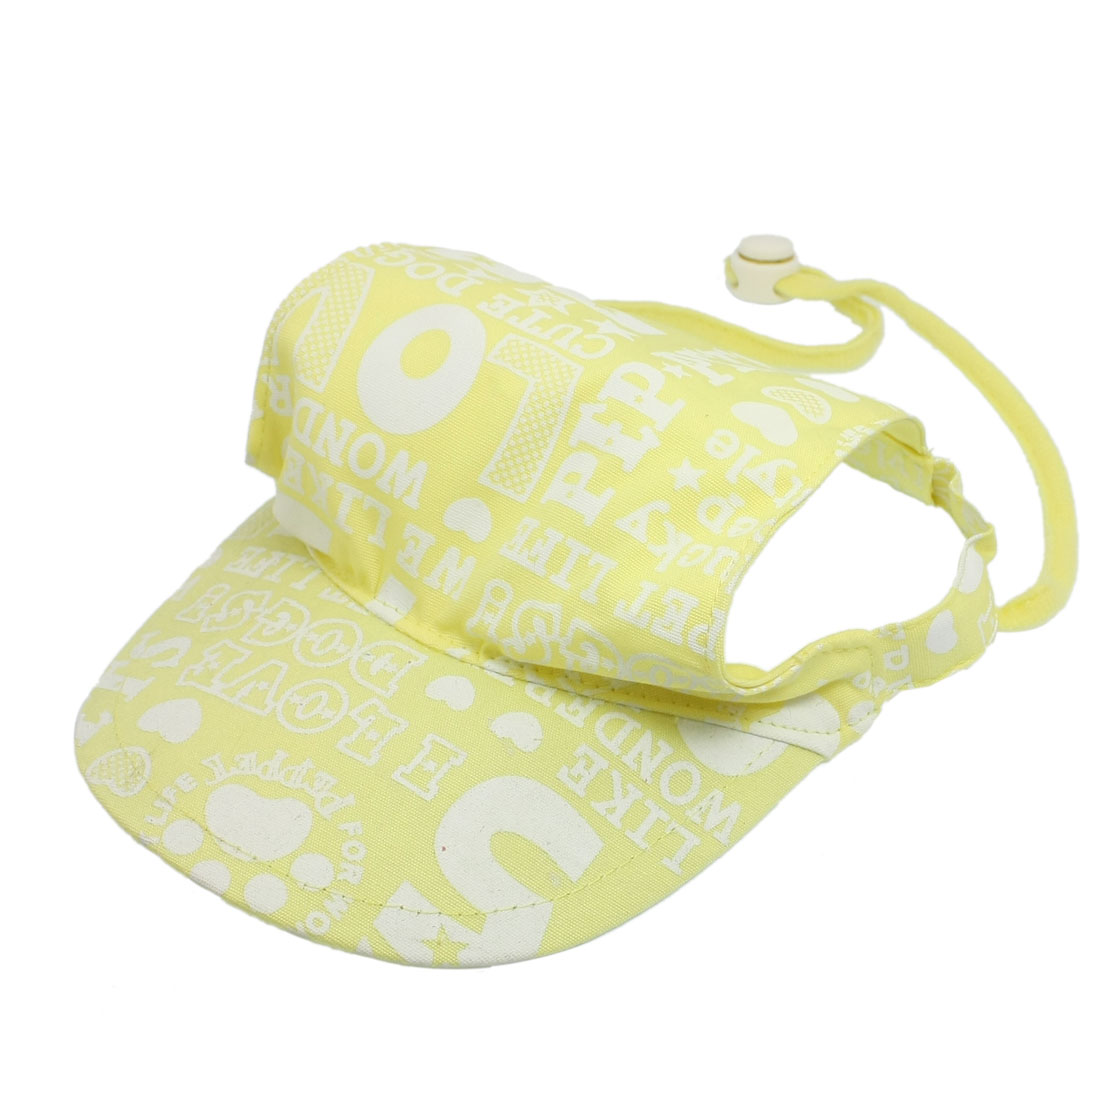 Pet Doggy Adjustable Chin-strap Summer Cap Visor Hat L Yellow White